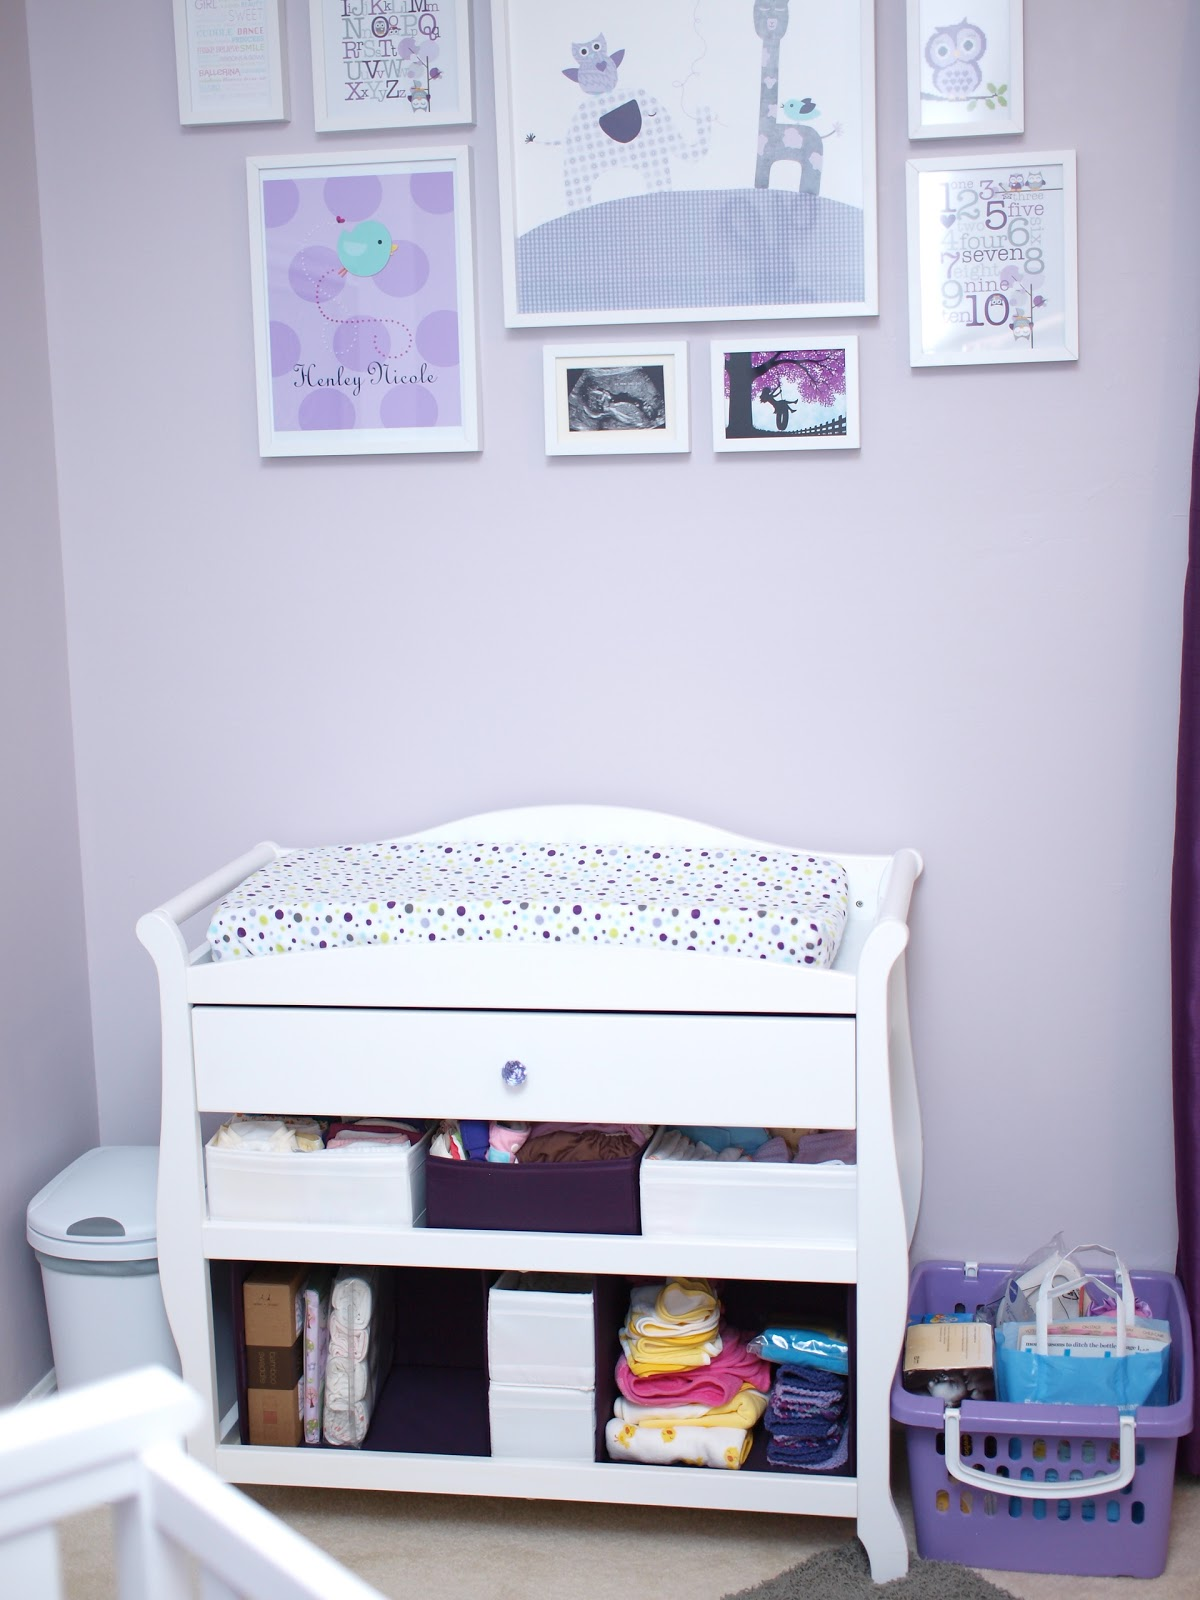 Ikea Ribba Ledges Our Own Kind Of Paradise Baby G Nursery Is Complete